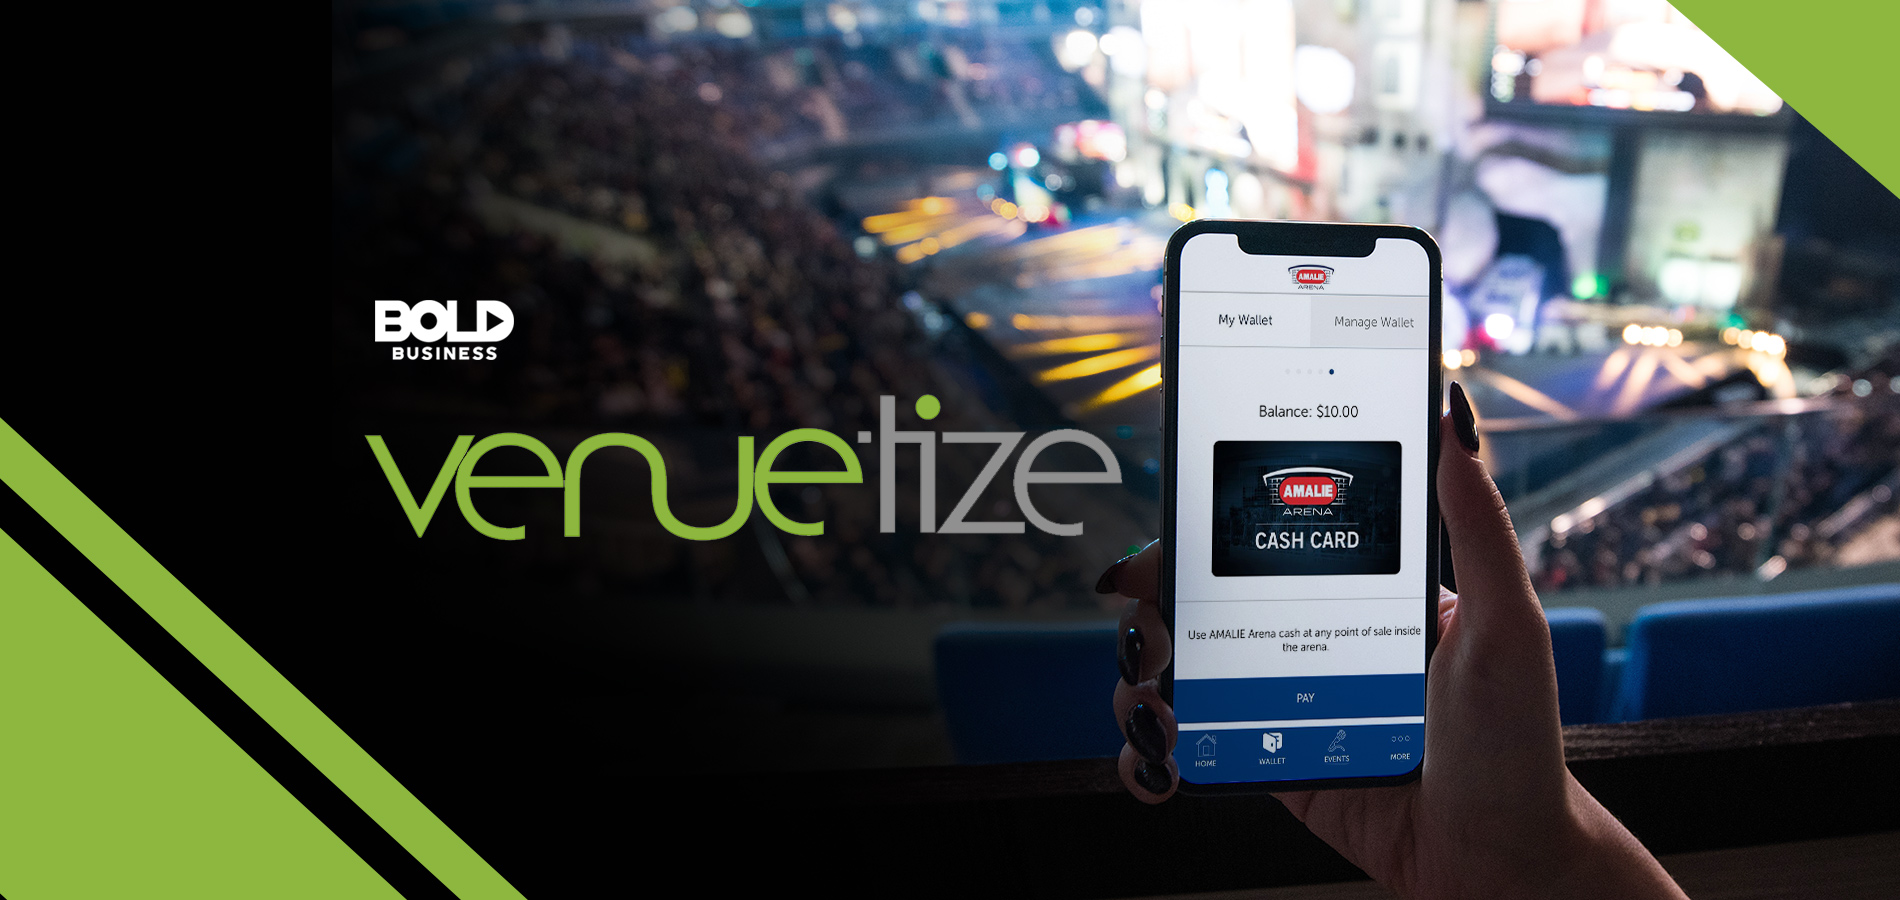 smart space solutions, venuetize logo smart phone on the right